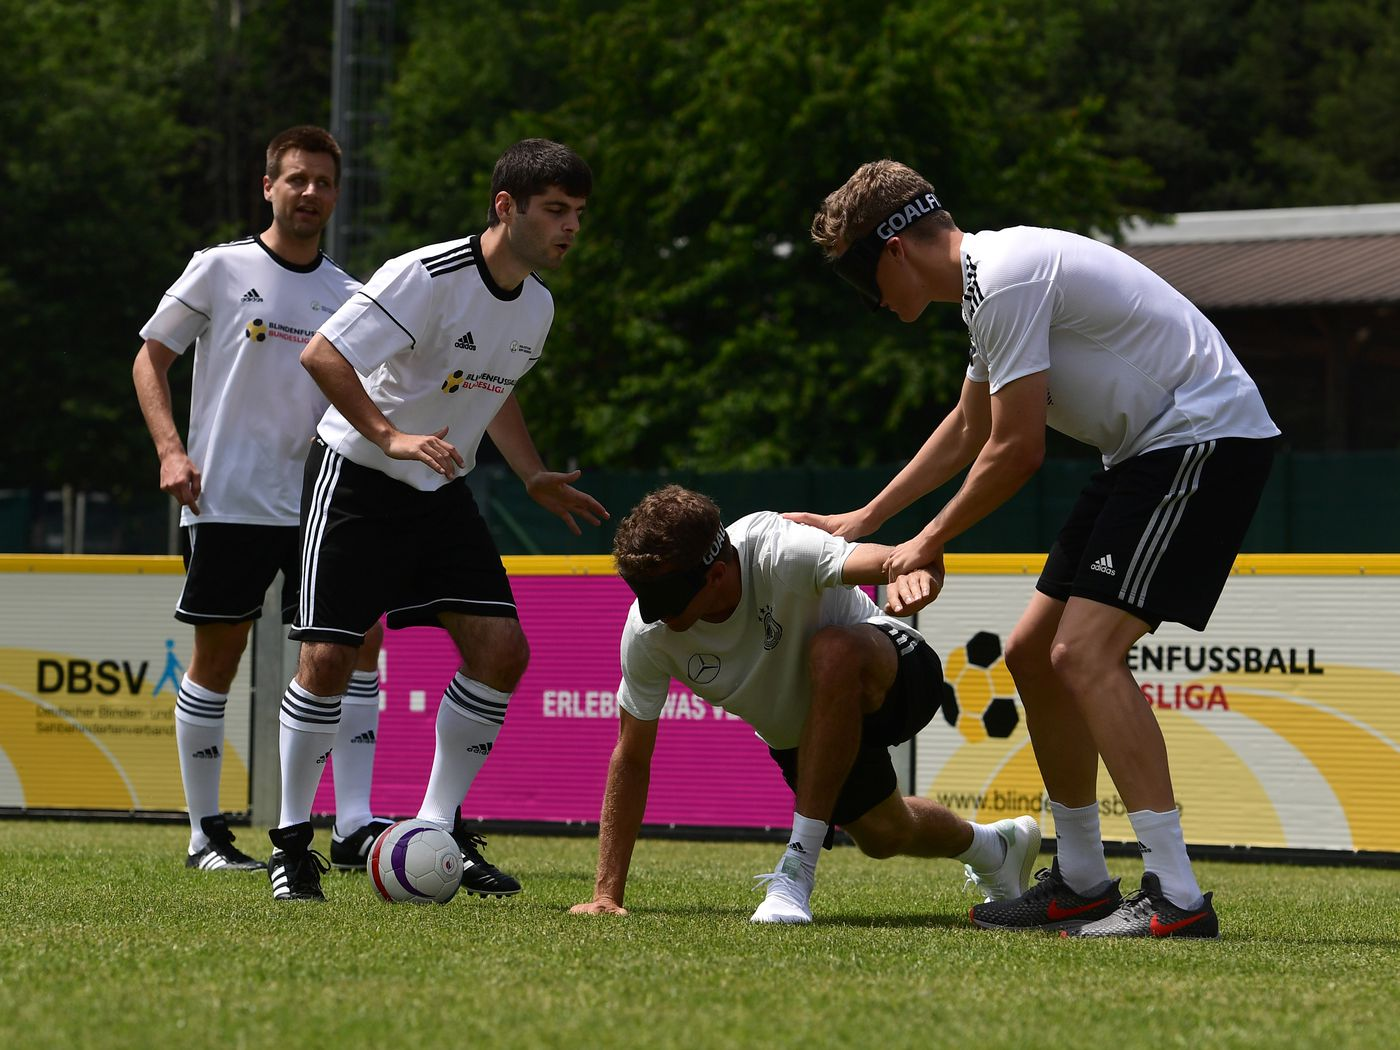 Thomas Muller and Matthias Ginter try their luck at Blindenfuball 1400x1050